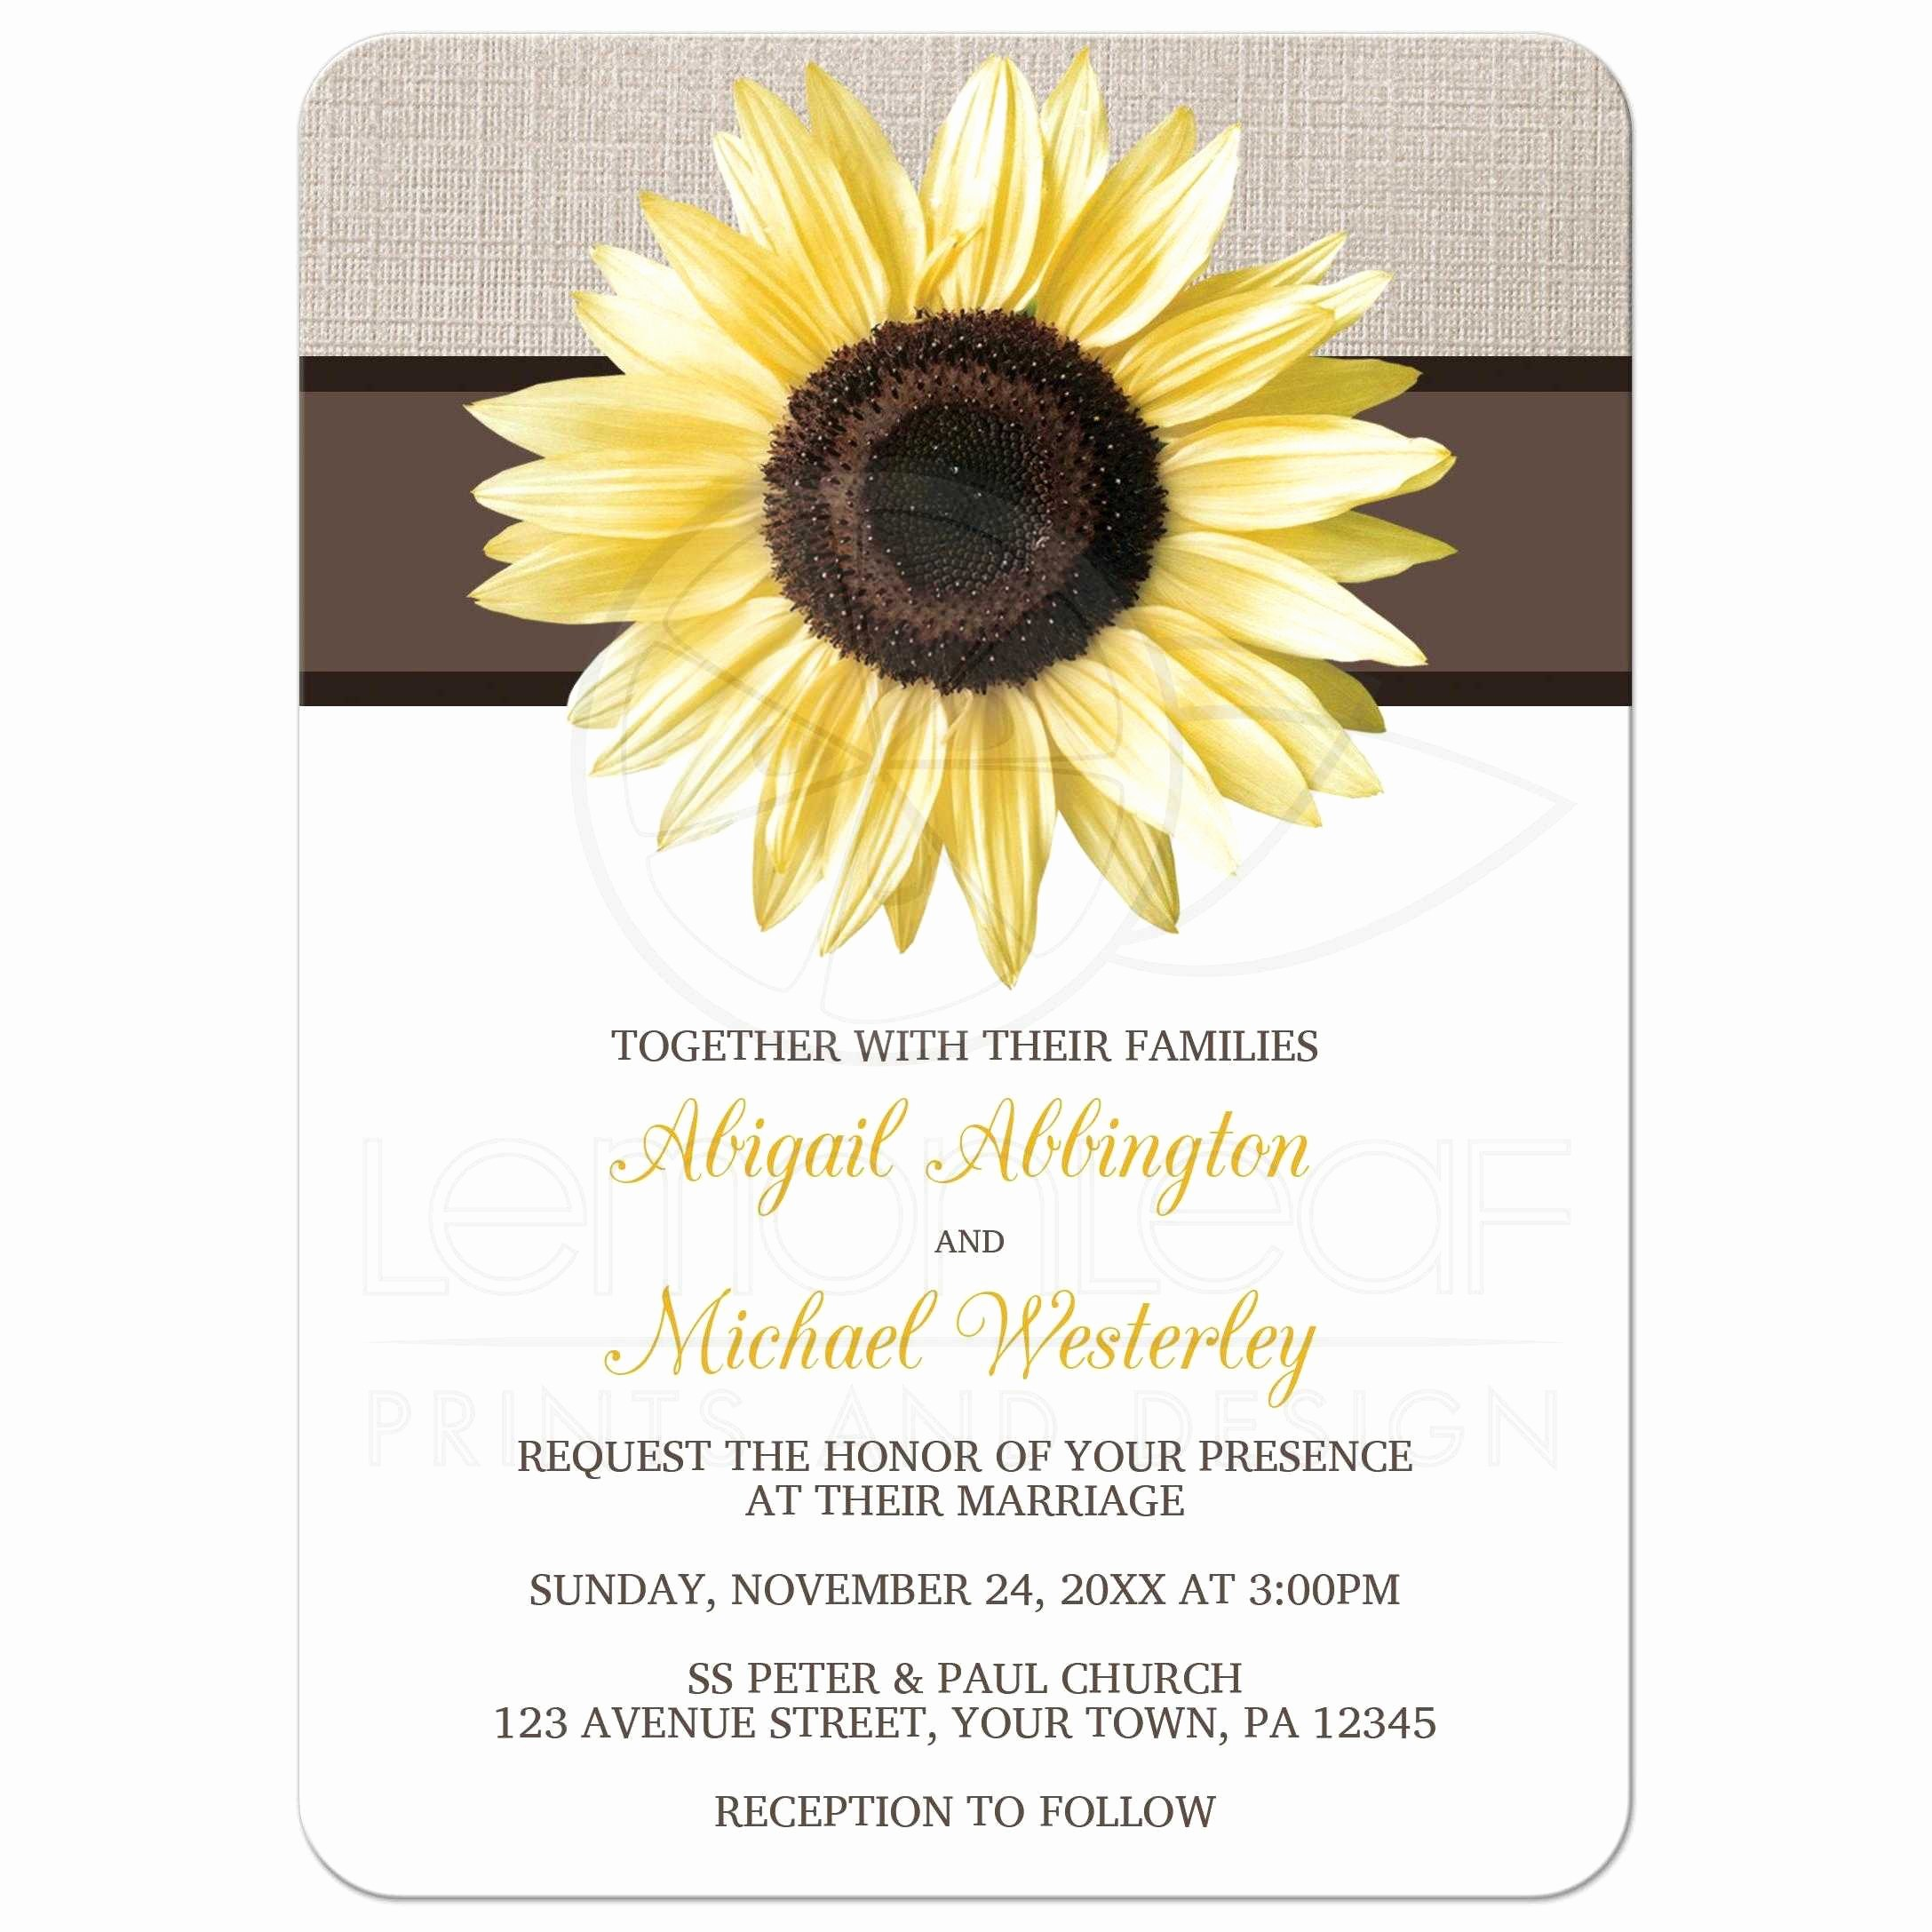 Rustic Sunflower Wedding Invitations Unique Wedding Invitations Rustic Sunflower Linen and White